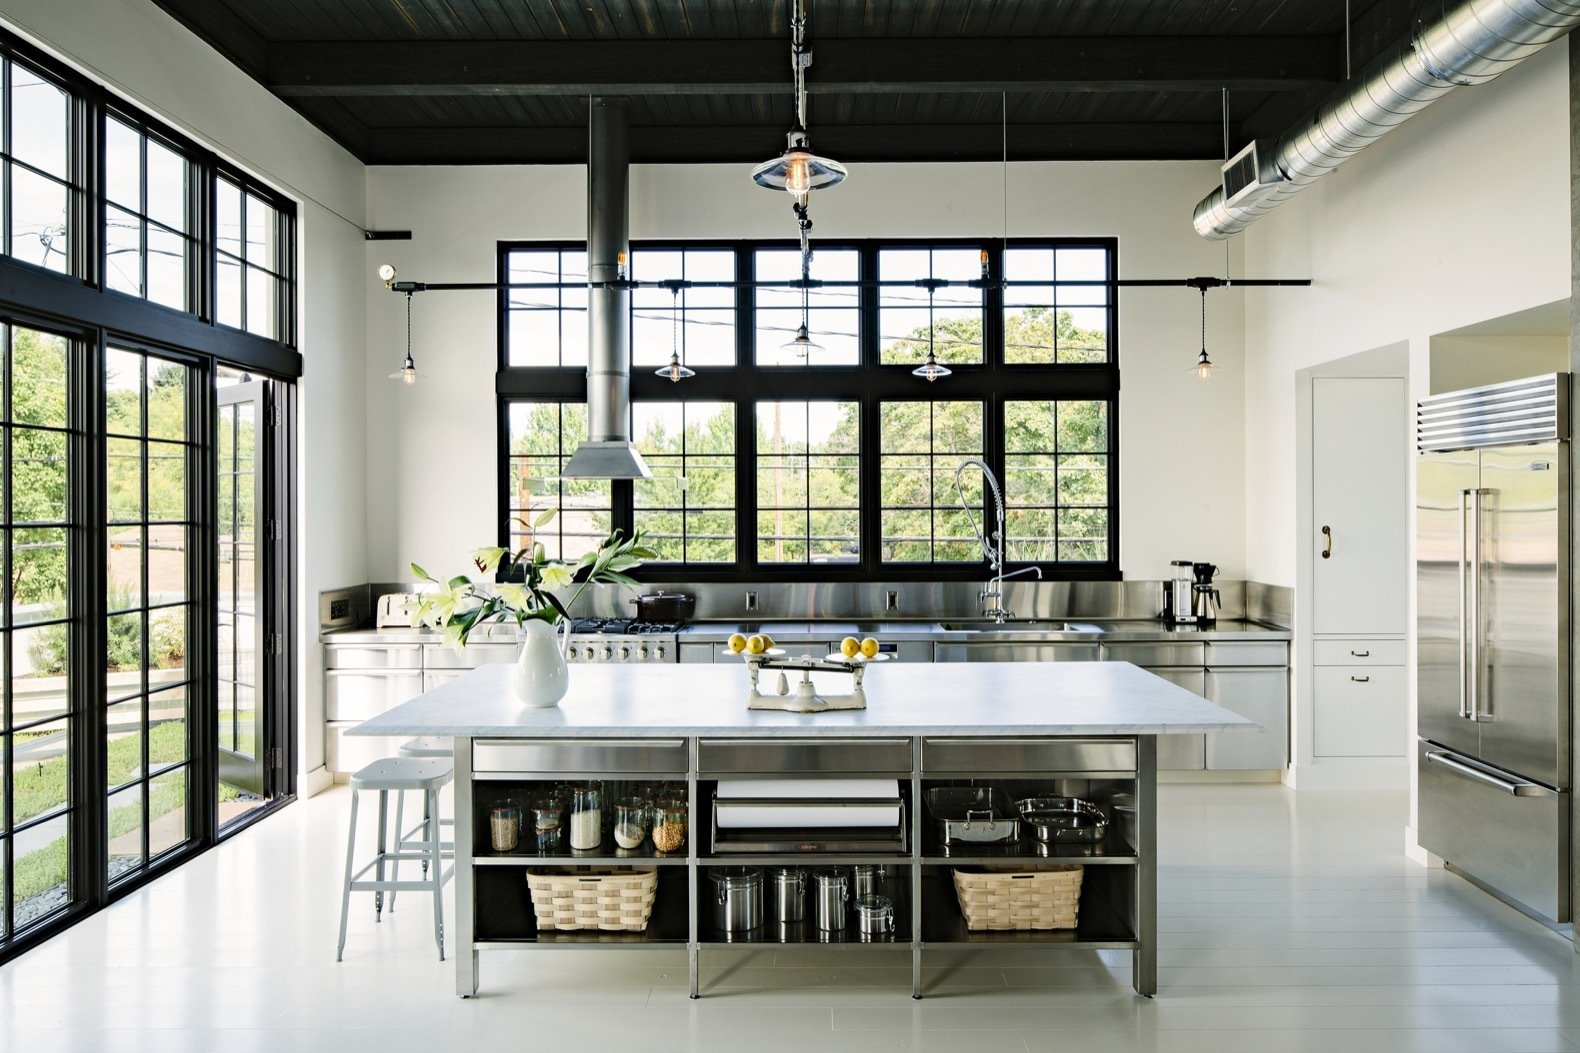 Kitchen, Metal, Cooktops, Metal, Refrigerator, Painted Wood, Pendant, Wall Oven, Range Hood, and Metal The kitchen island is topped with a five-by-10-foot slab of Carrera marble.  Best Kitchen Range Hood Metal Metal Pendant Photos from A 1920s Portland Warehouse Is Rehabbed Into an Industrial-Chic Home